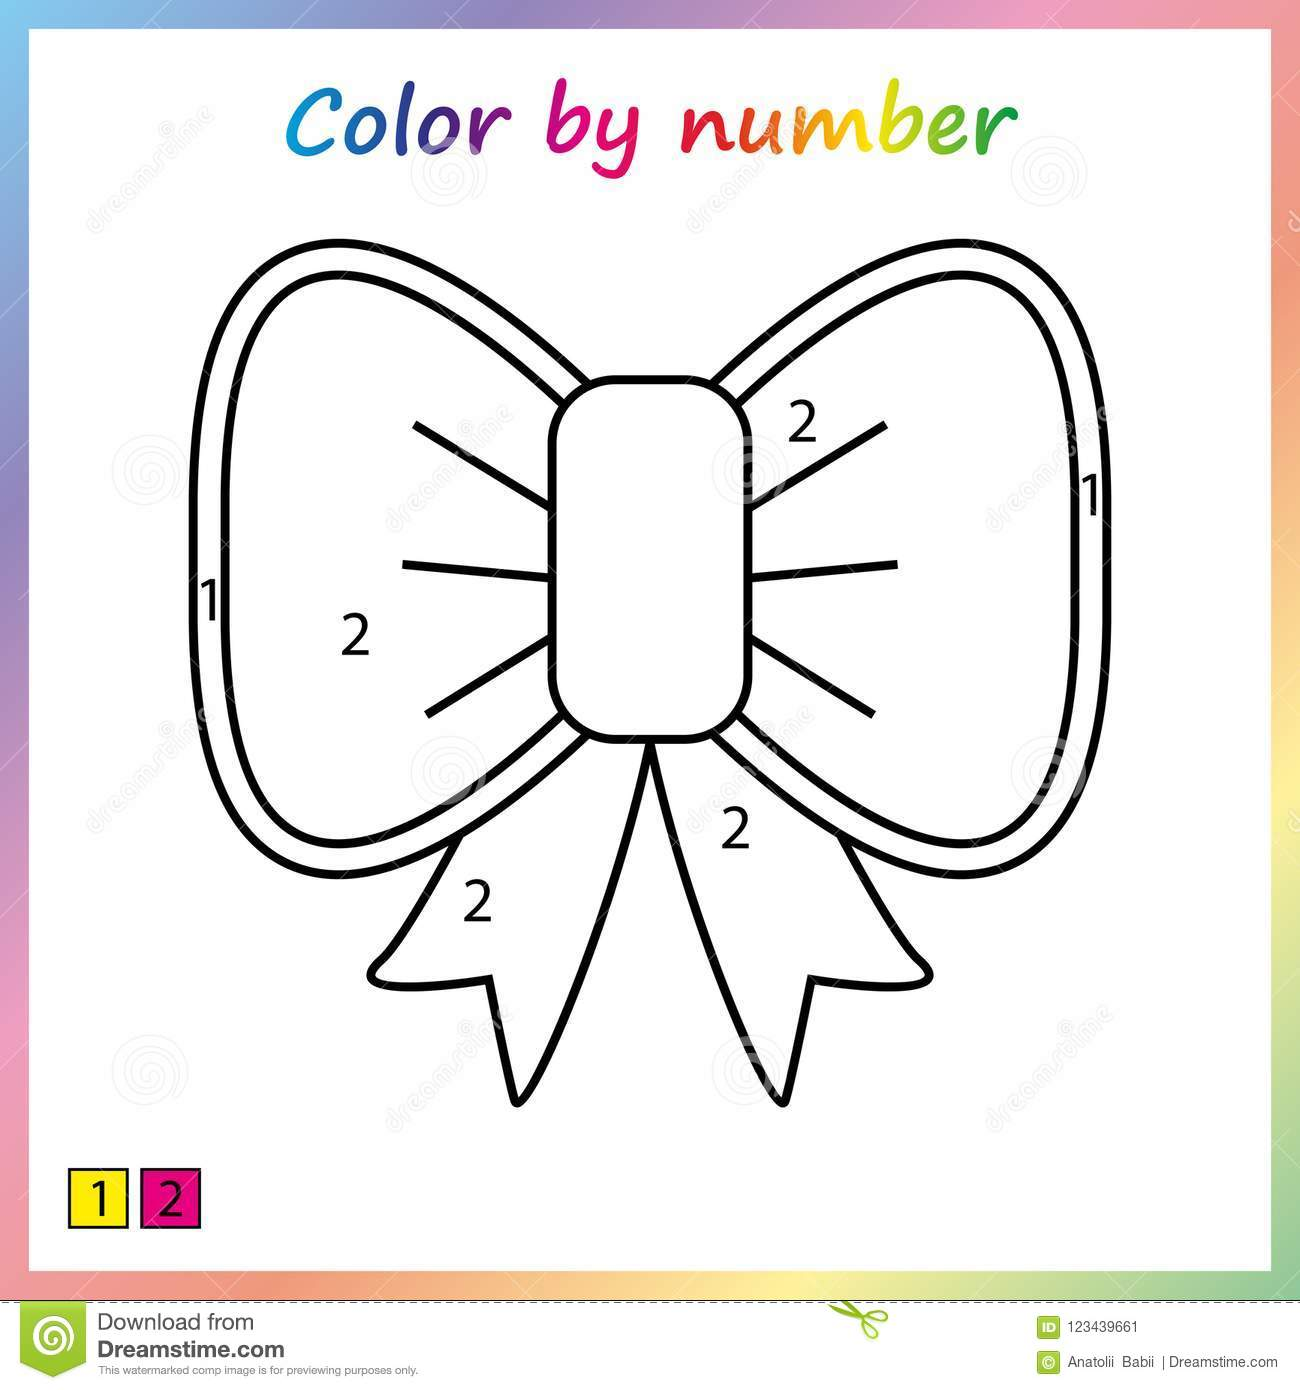 Color Purple Worksheet For Preschoolers